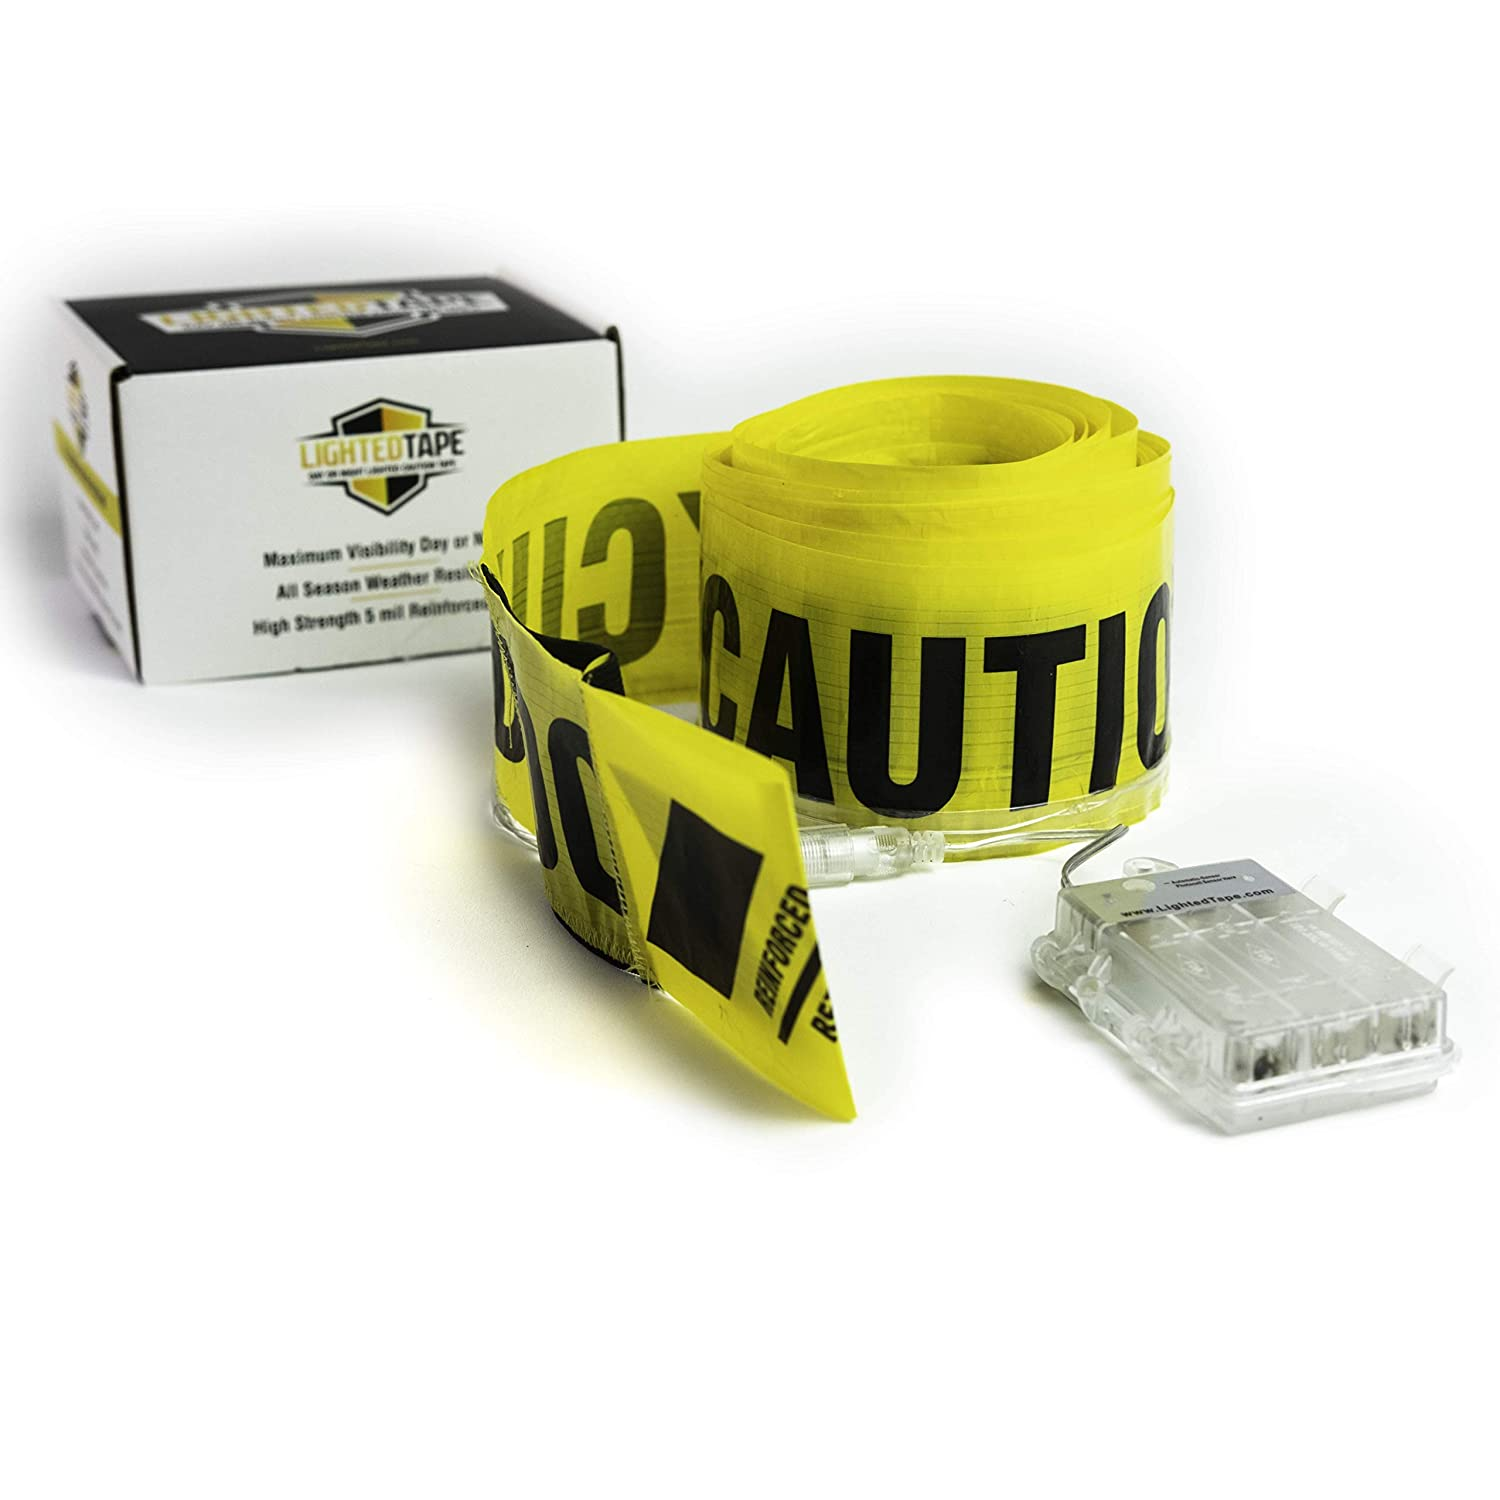 LED Lighted Tape Yellow Caution Tape Black Text on Yellow Background High Visibility Day Or Night 5mil Barricade Tape with Flashing LED Lights and Weather Resistant Sealed Battery Case